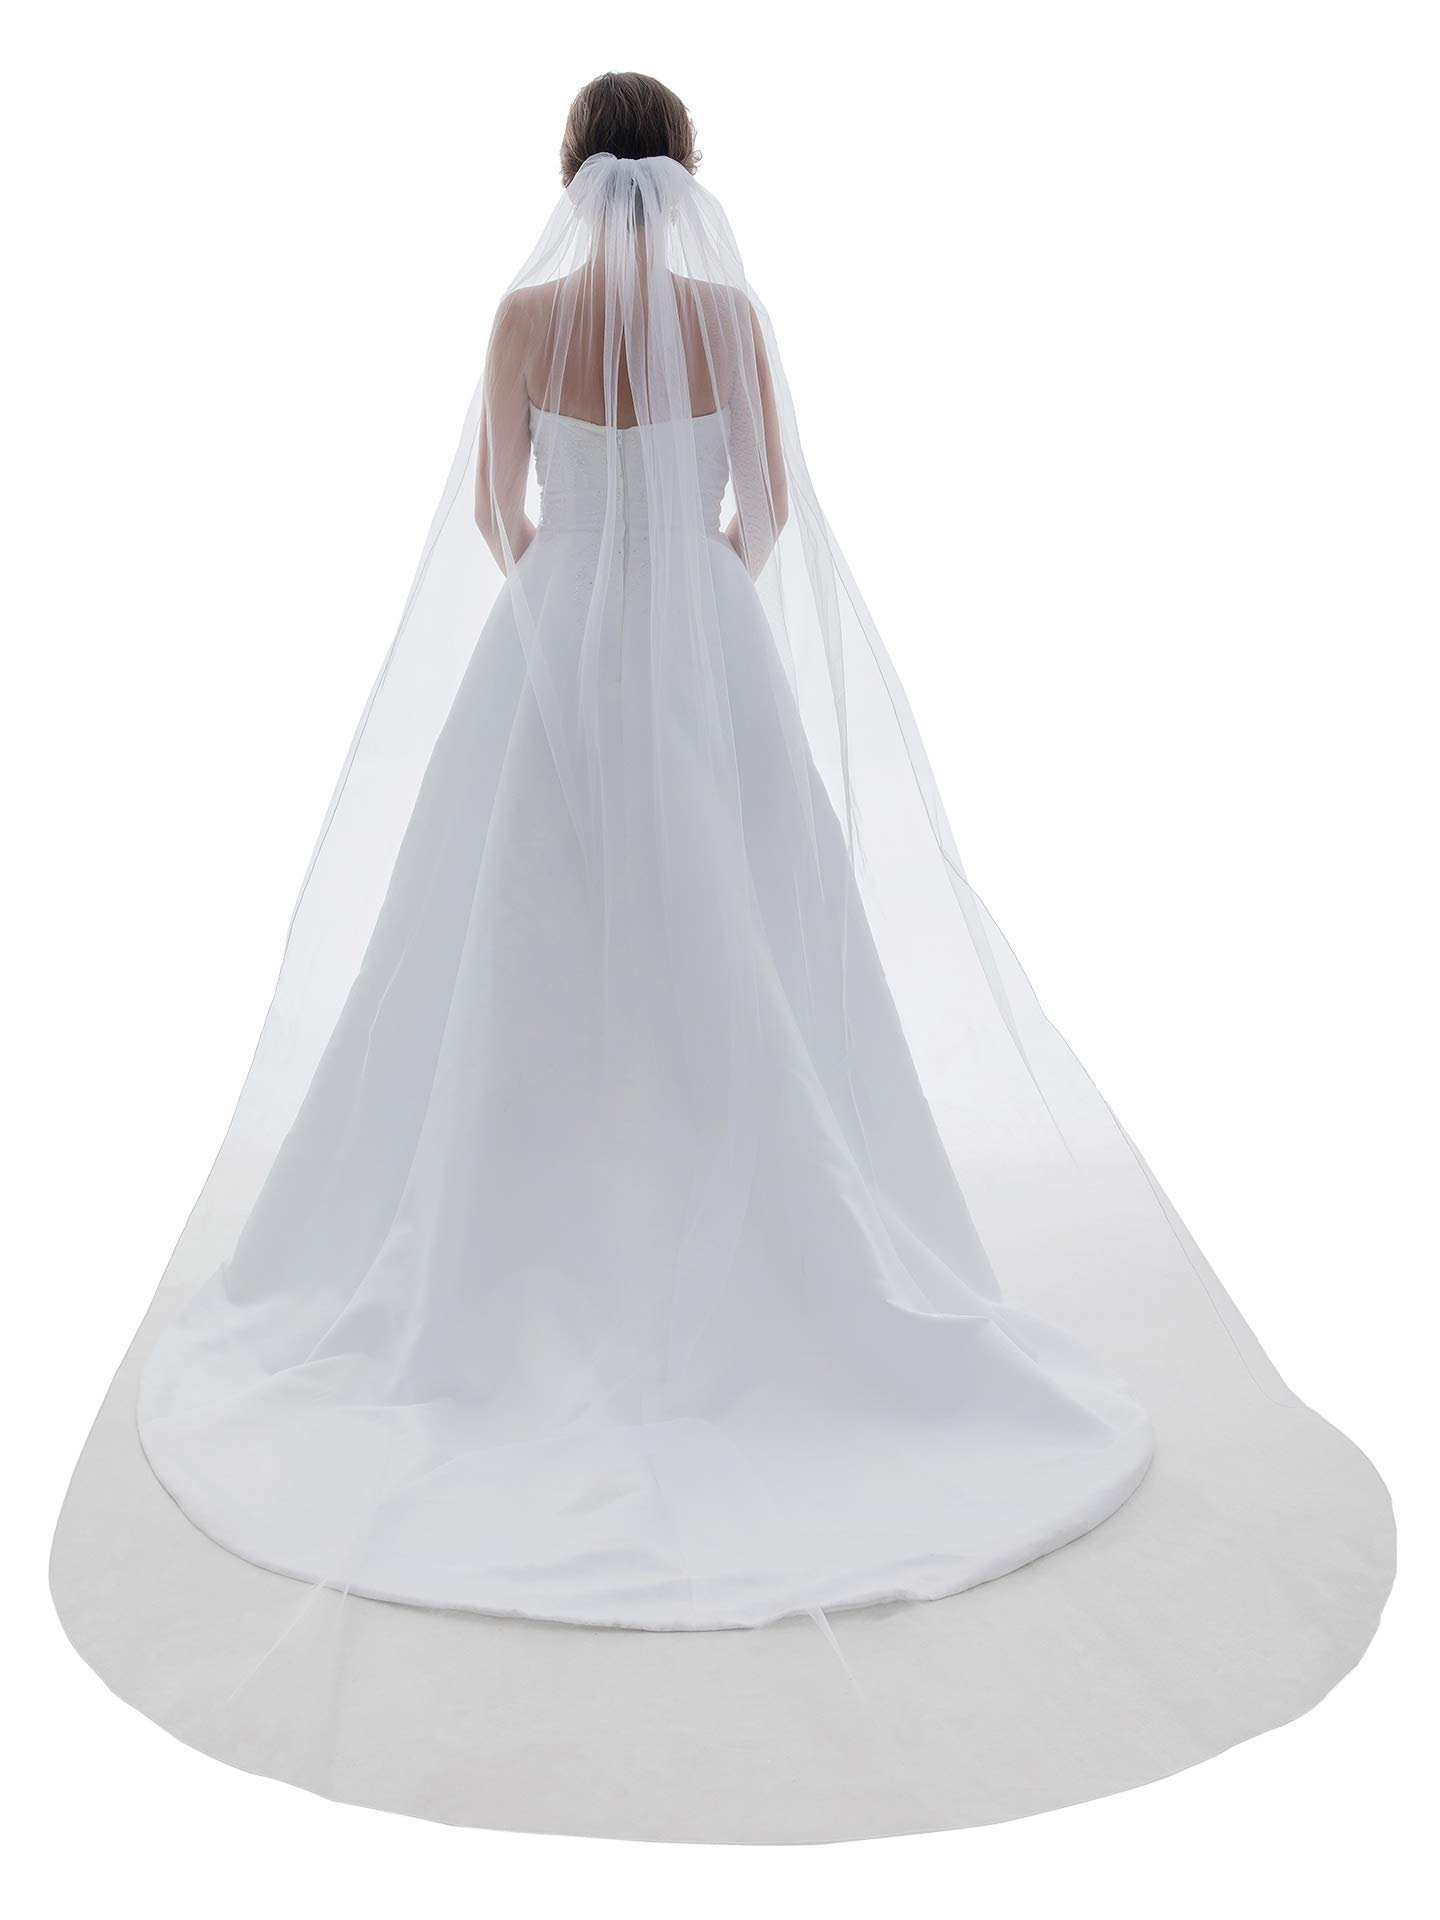 1T 1 Tier Pencil Edge Bridal Wedding Veil - Ivory Cathedral Length 108'' by SAMKY